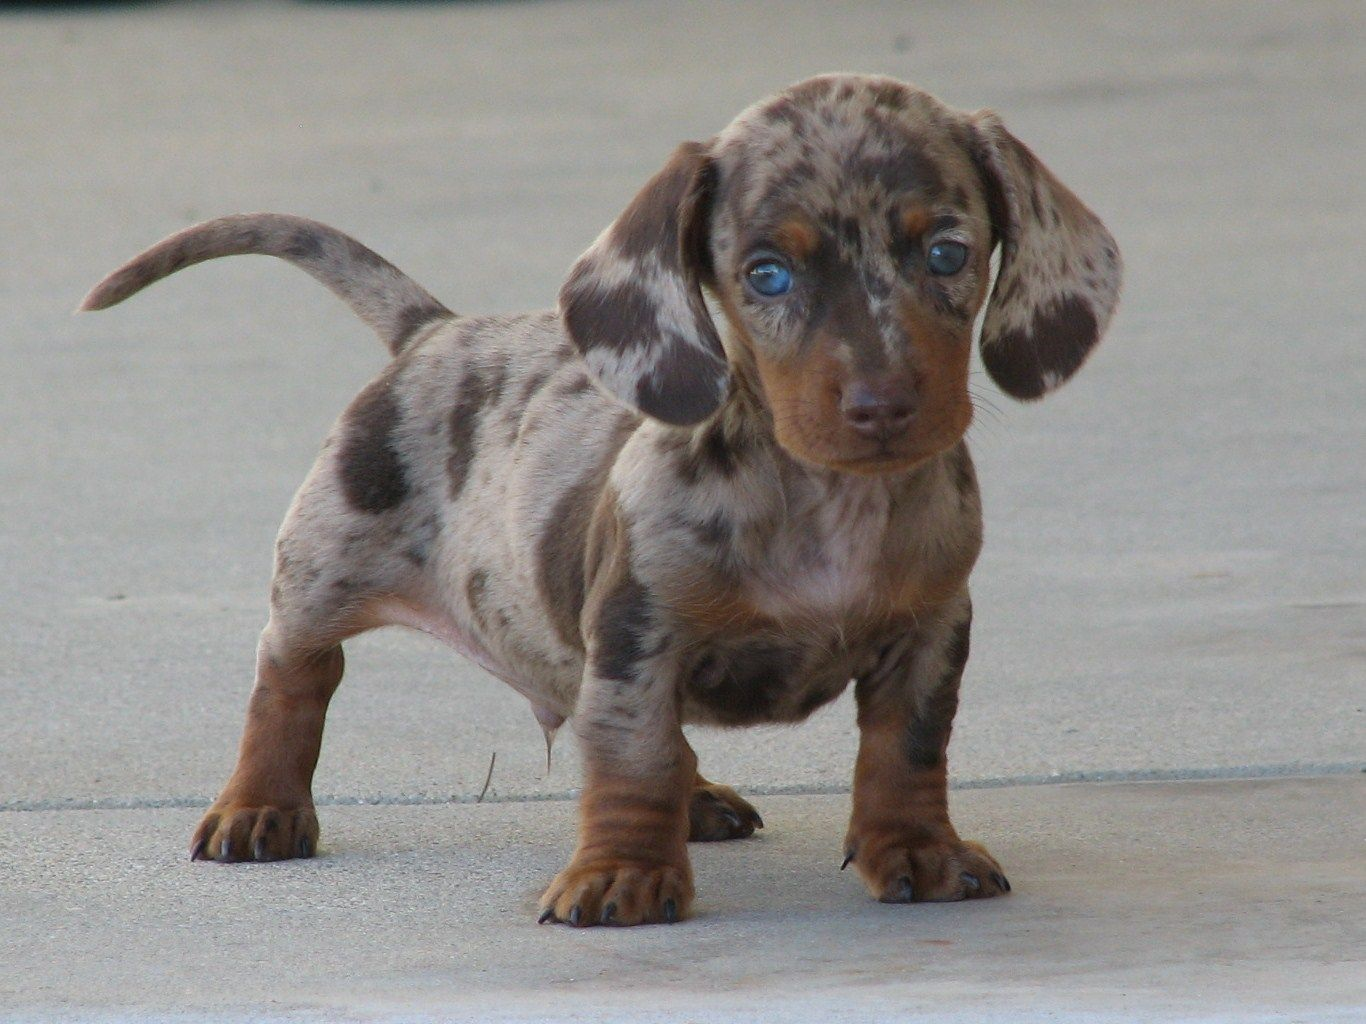 I Am So In Love With Miniature Dachshunds So Was My Mom A Puppy For The Holidays Dog Crossbreeds Dapple Dachshund Puppy Dapple Dachshund